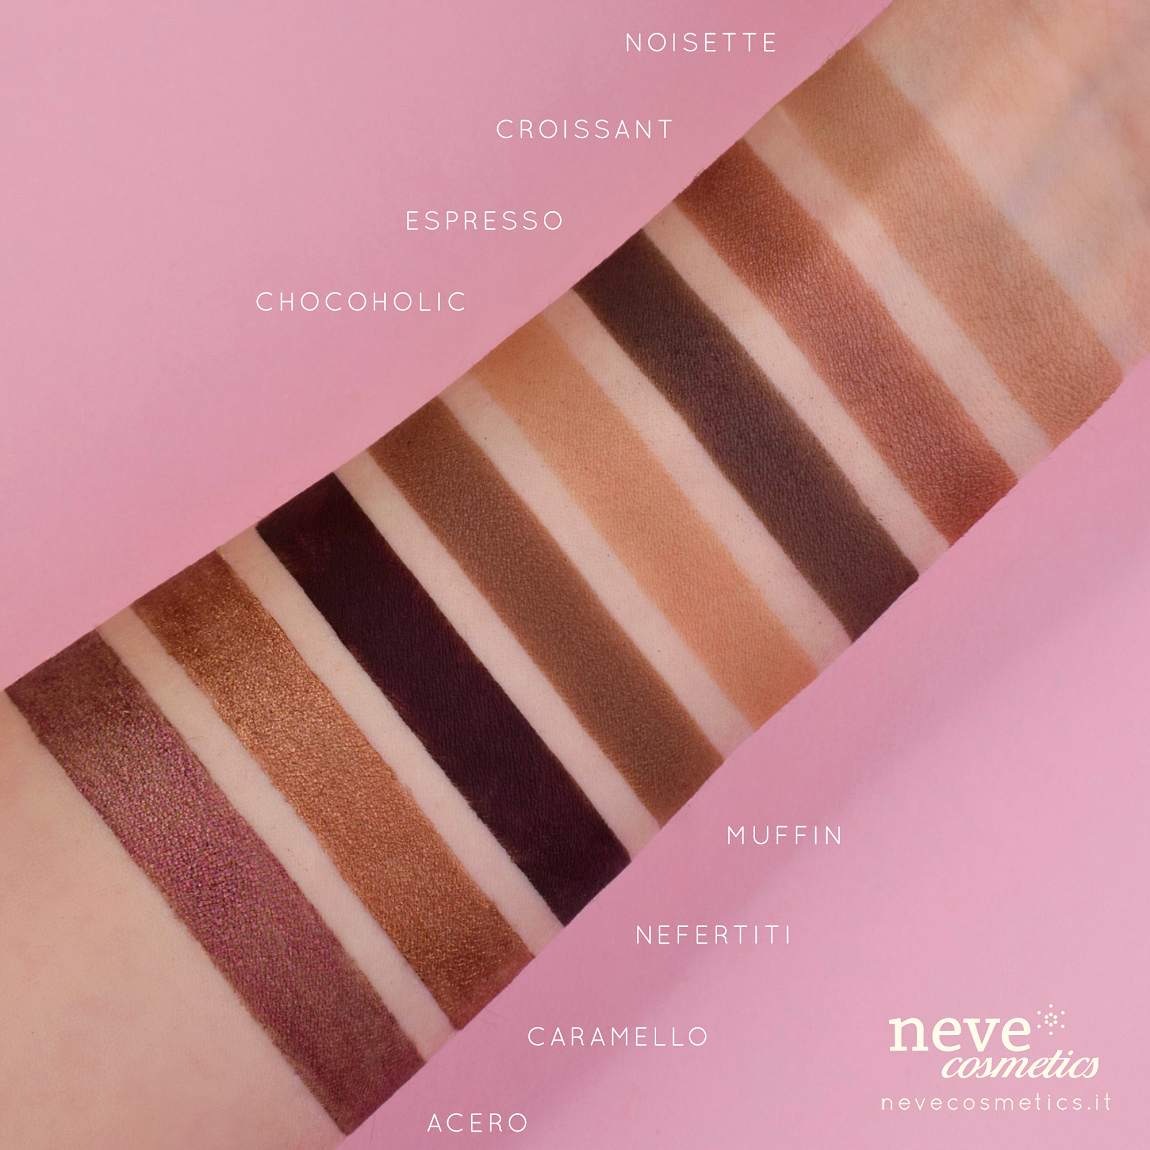 Swatch of eye shadow shades chocolate brown and hazelnut.